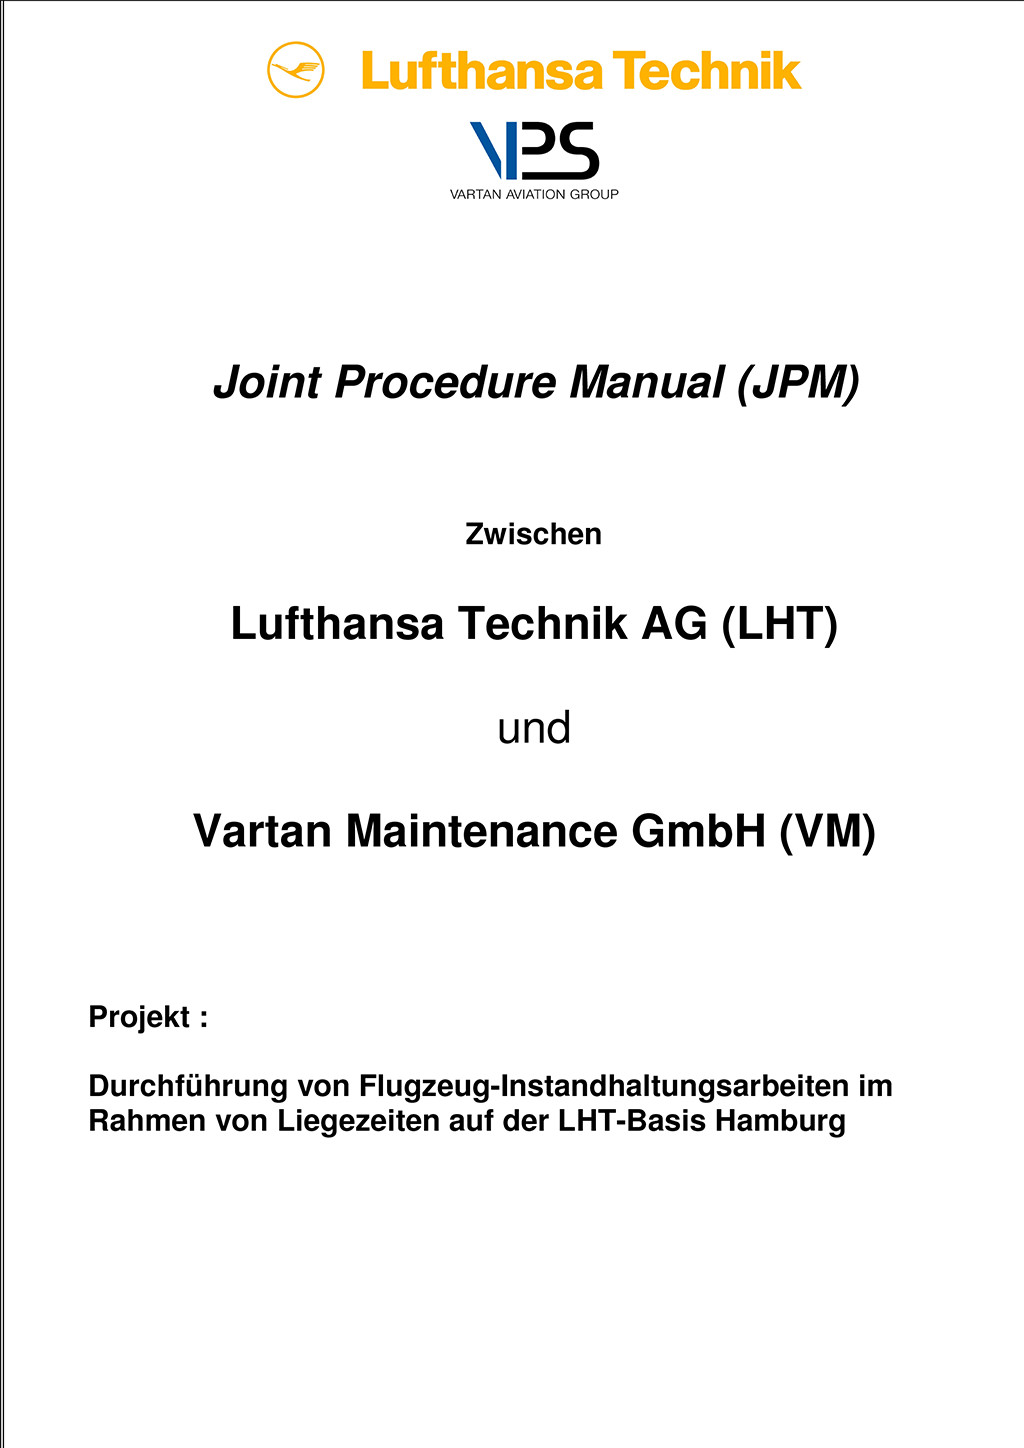 Lufthansa Technik Joint Procedure Manual